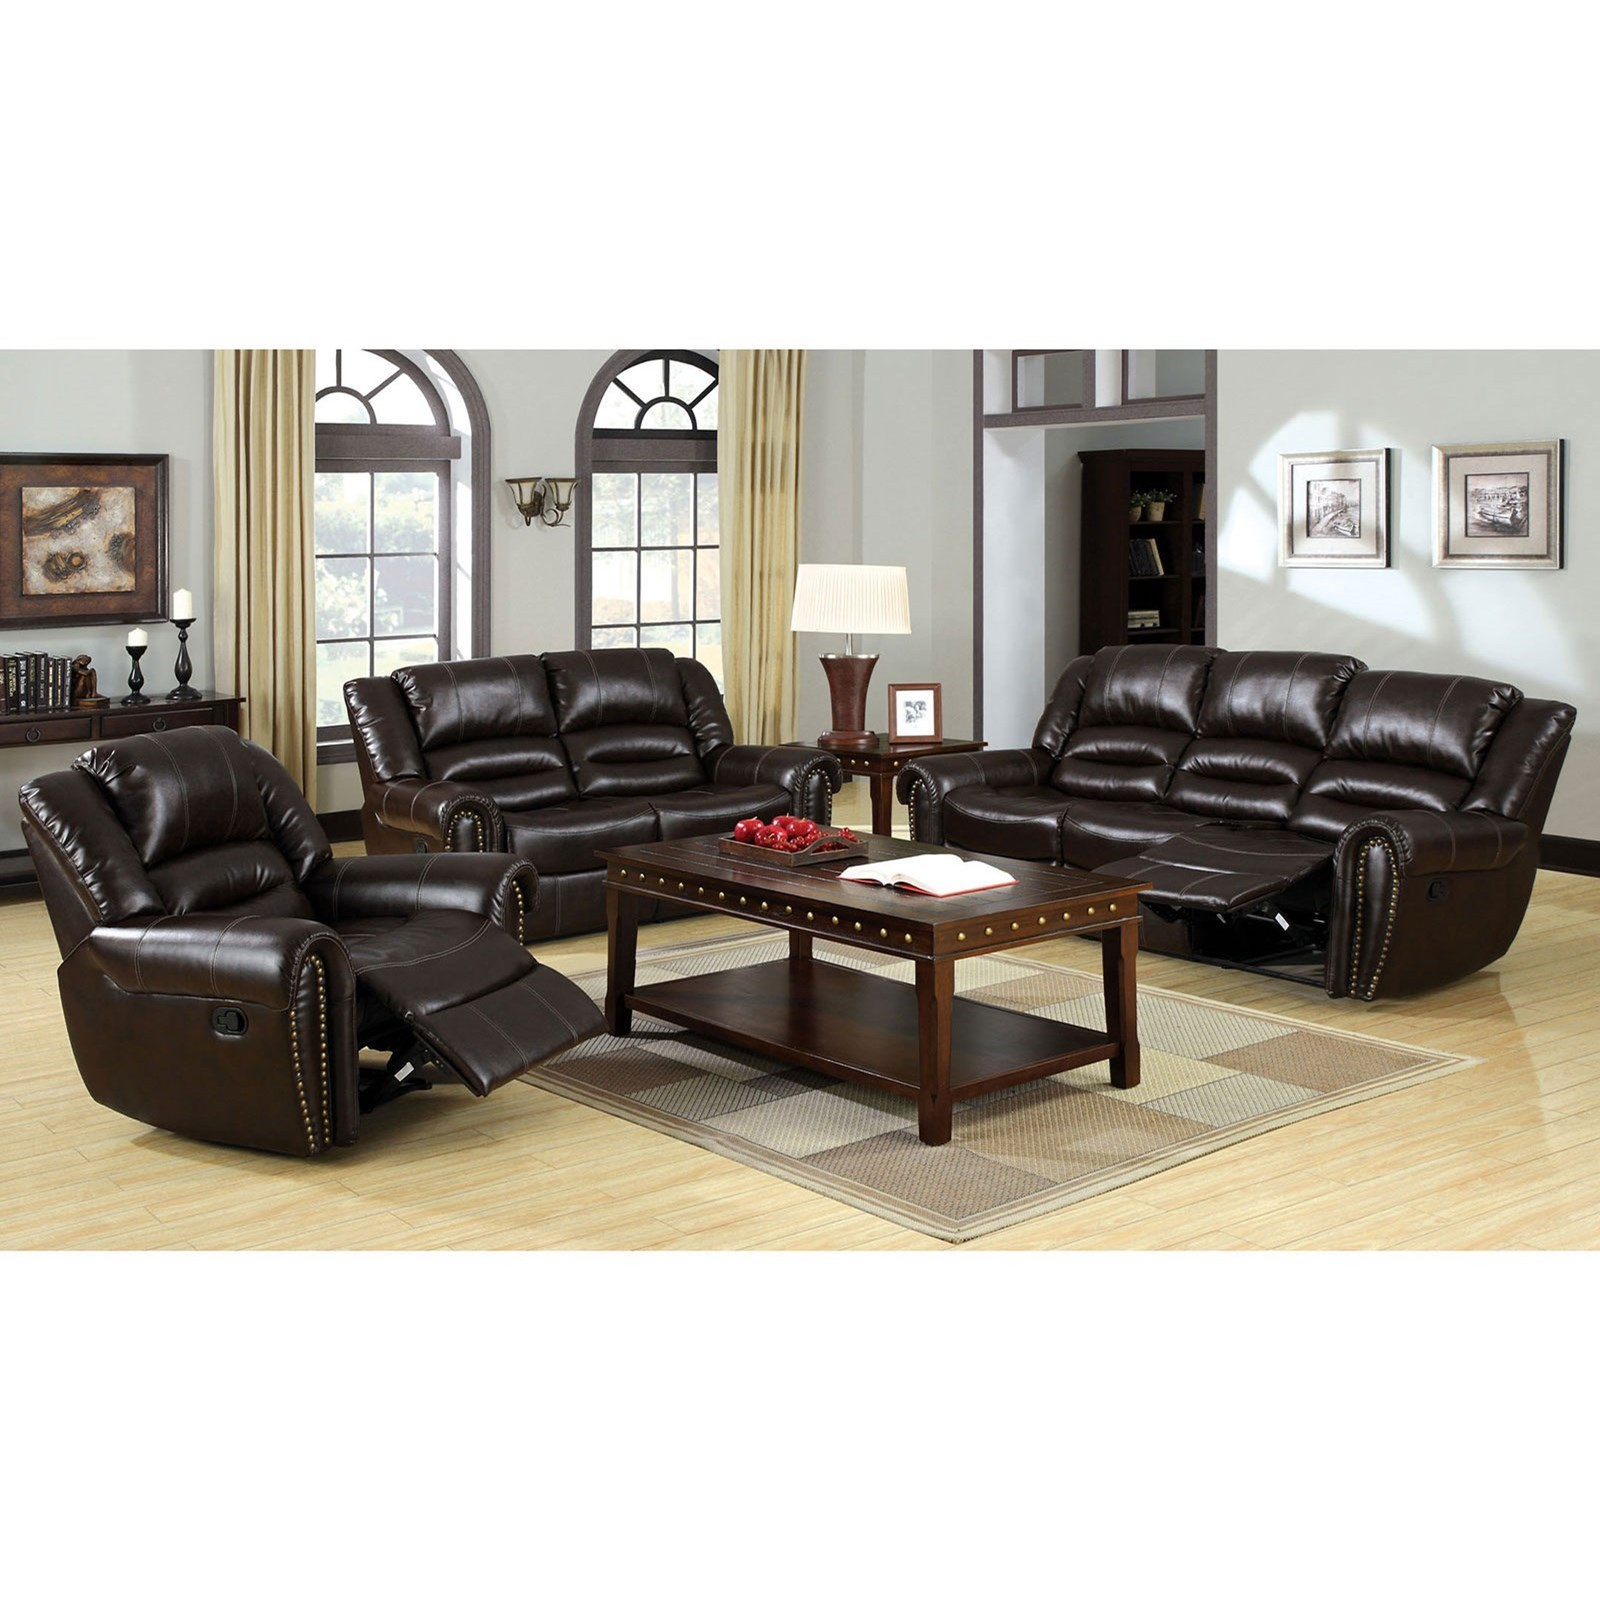 Furniture of America Dundee 3 Piece Reclining Living Room Set ...